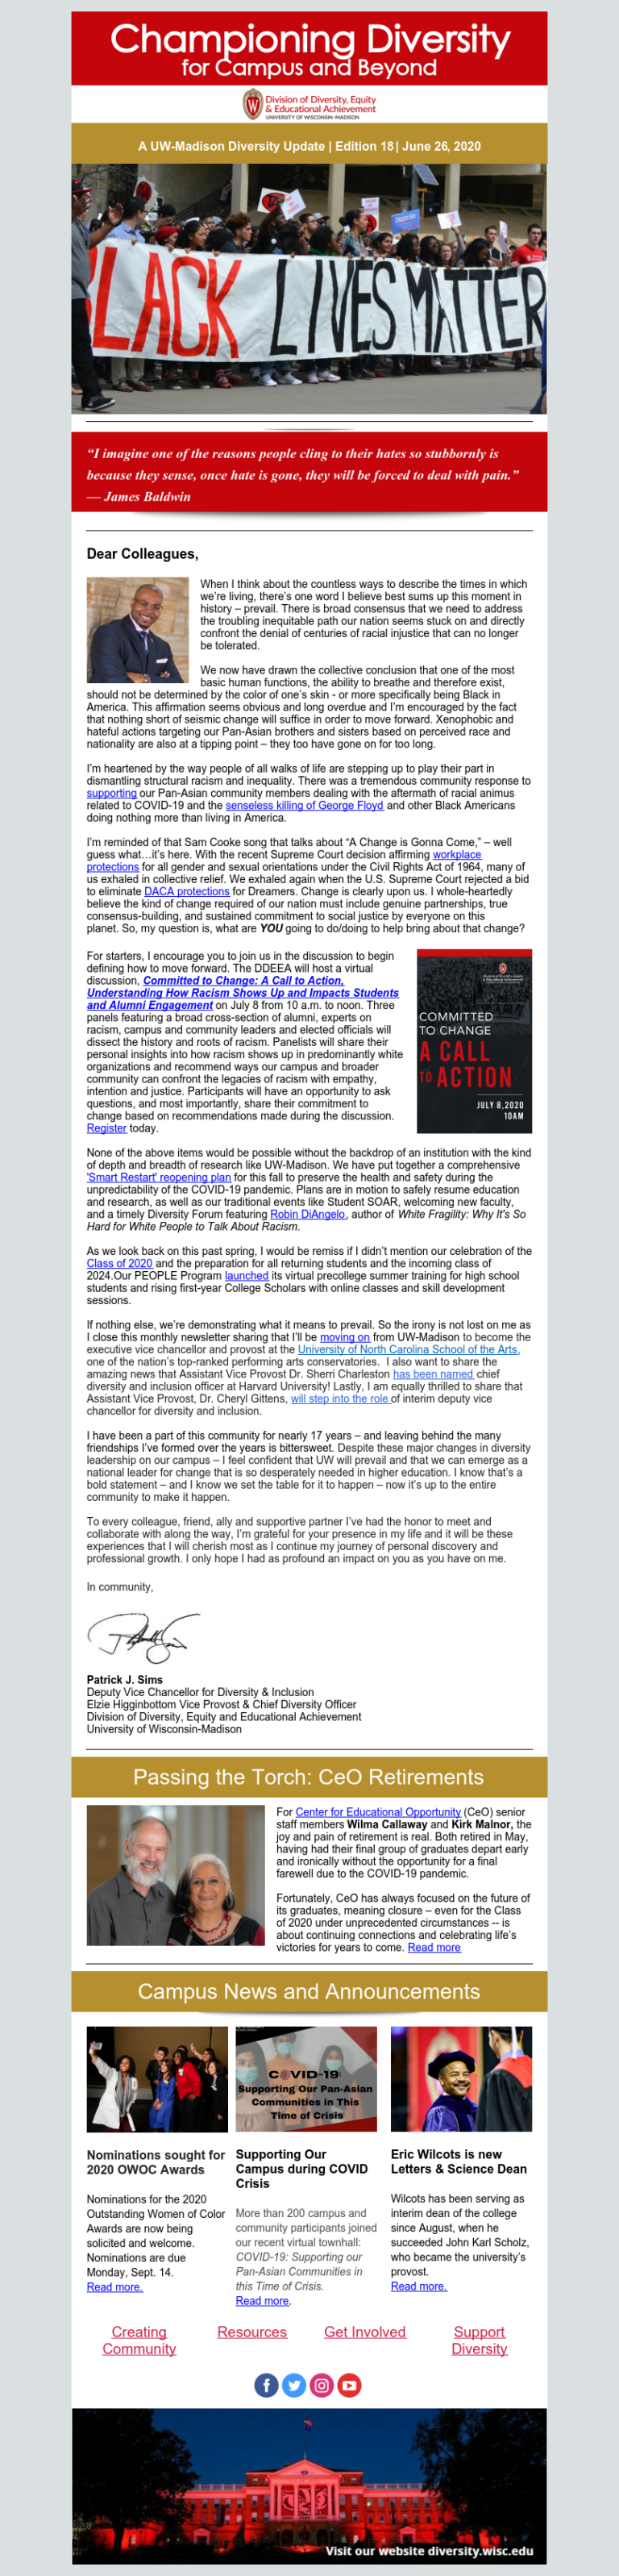 Example of the DDEEA email newsletter. The list of emails contains links to read accessible versions of the newsletters.